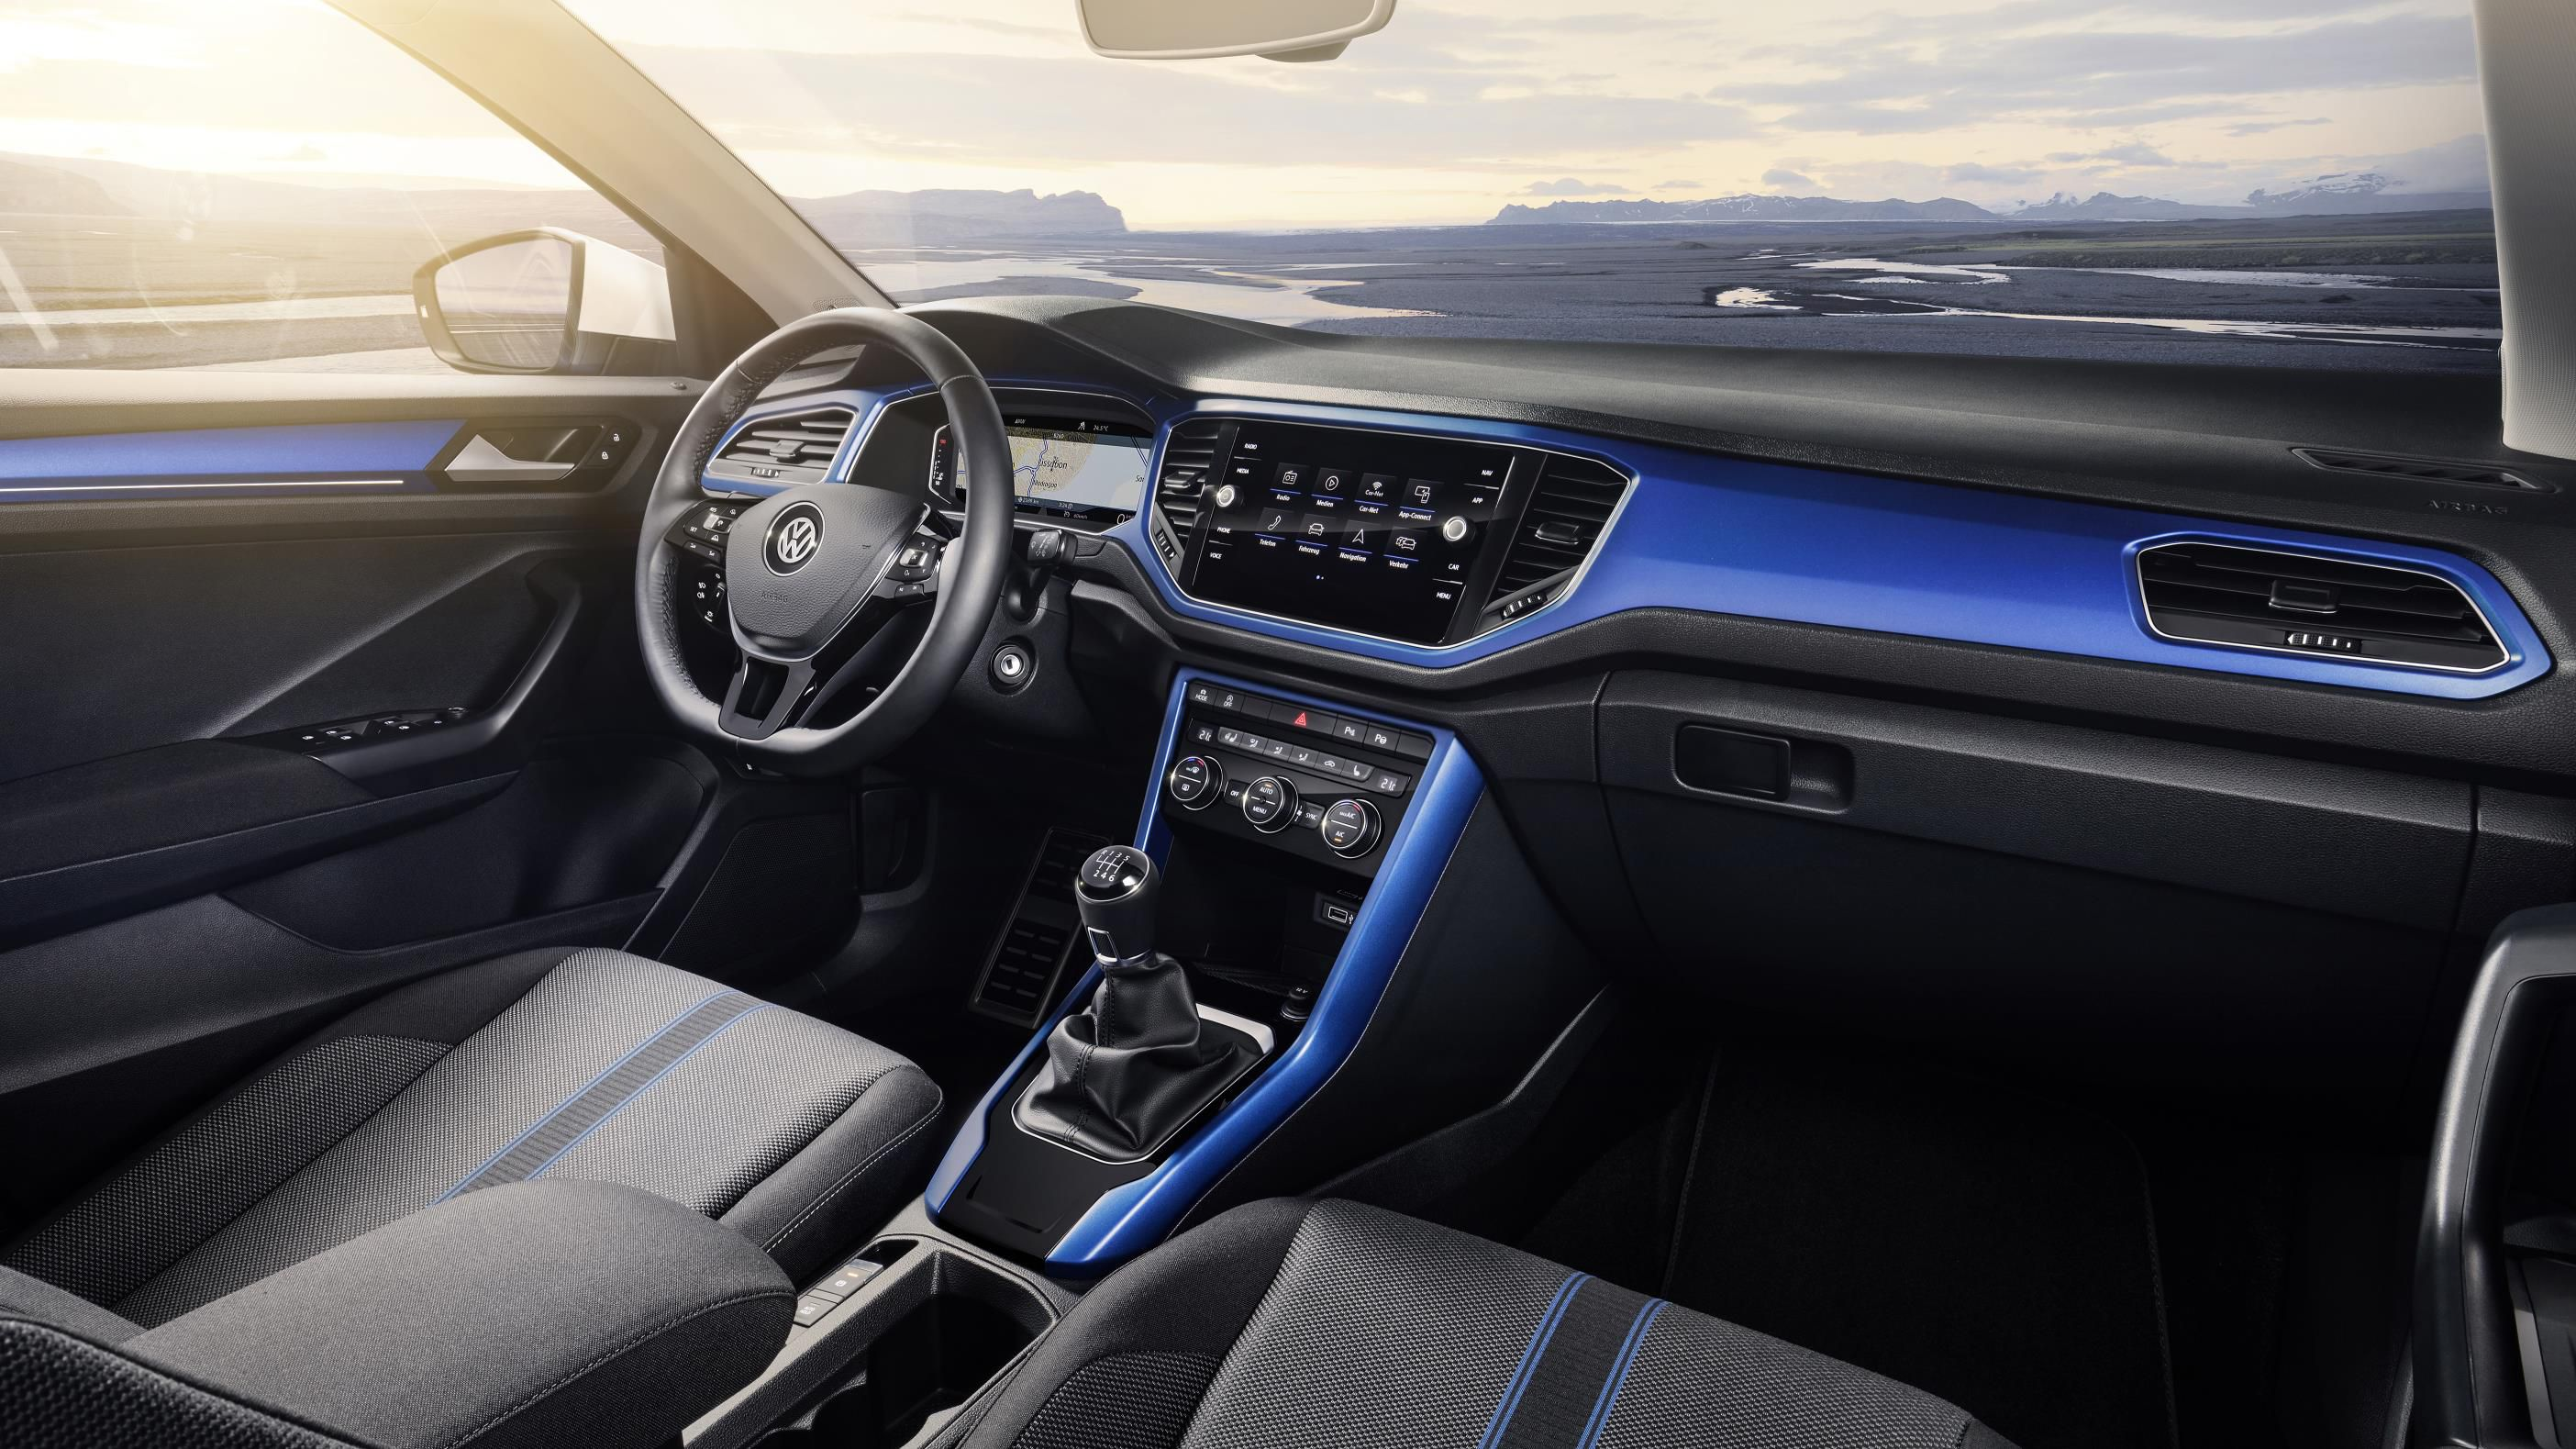 Interior of VW T-Roc SUV with blue trim on dashboard and seats